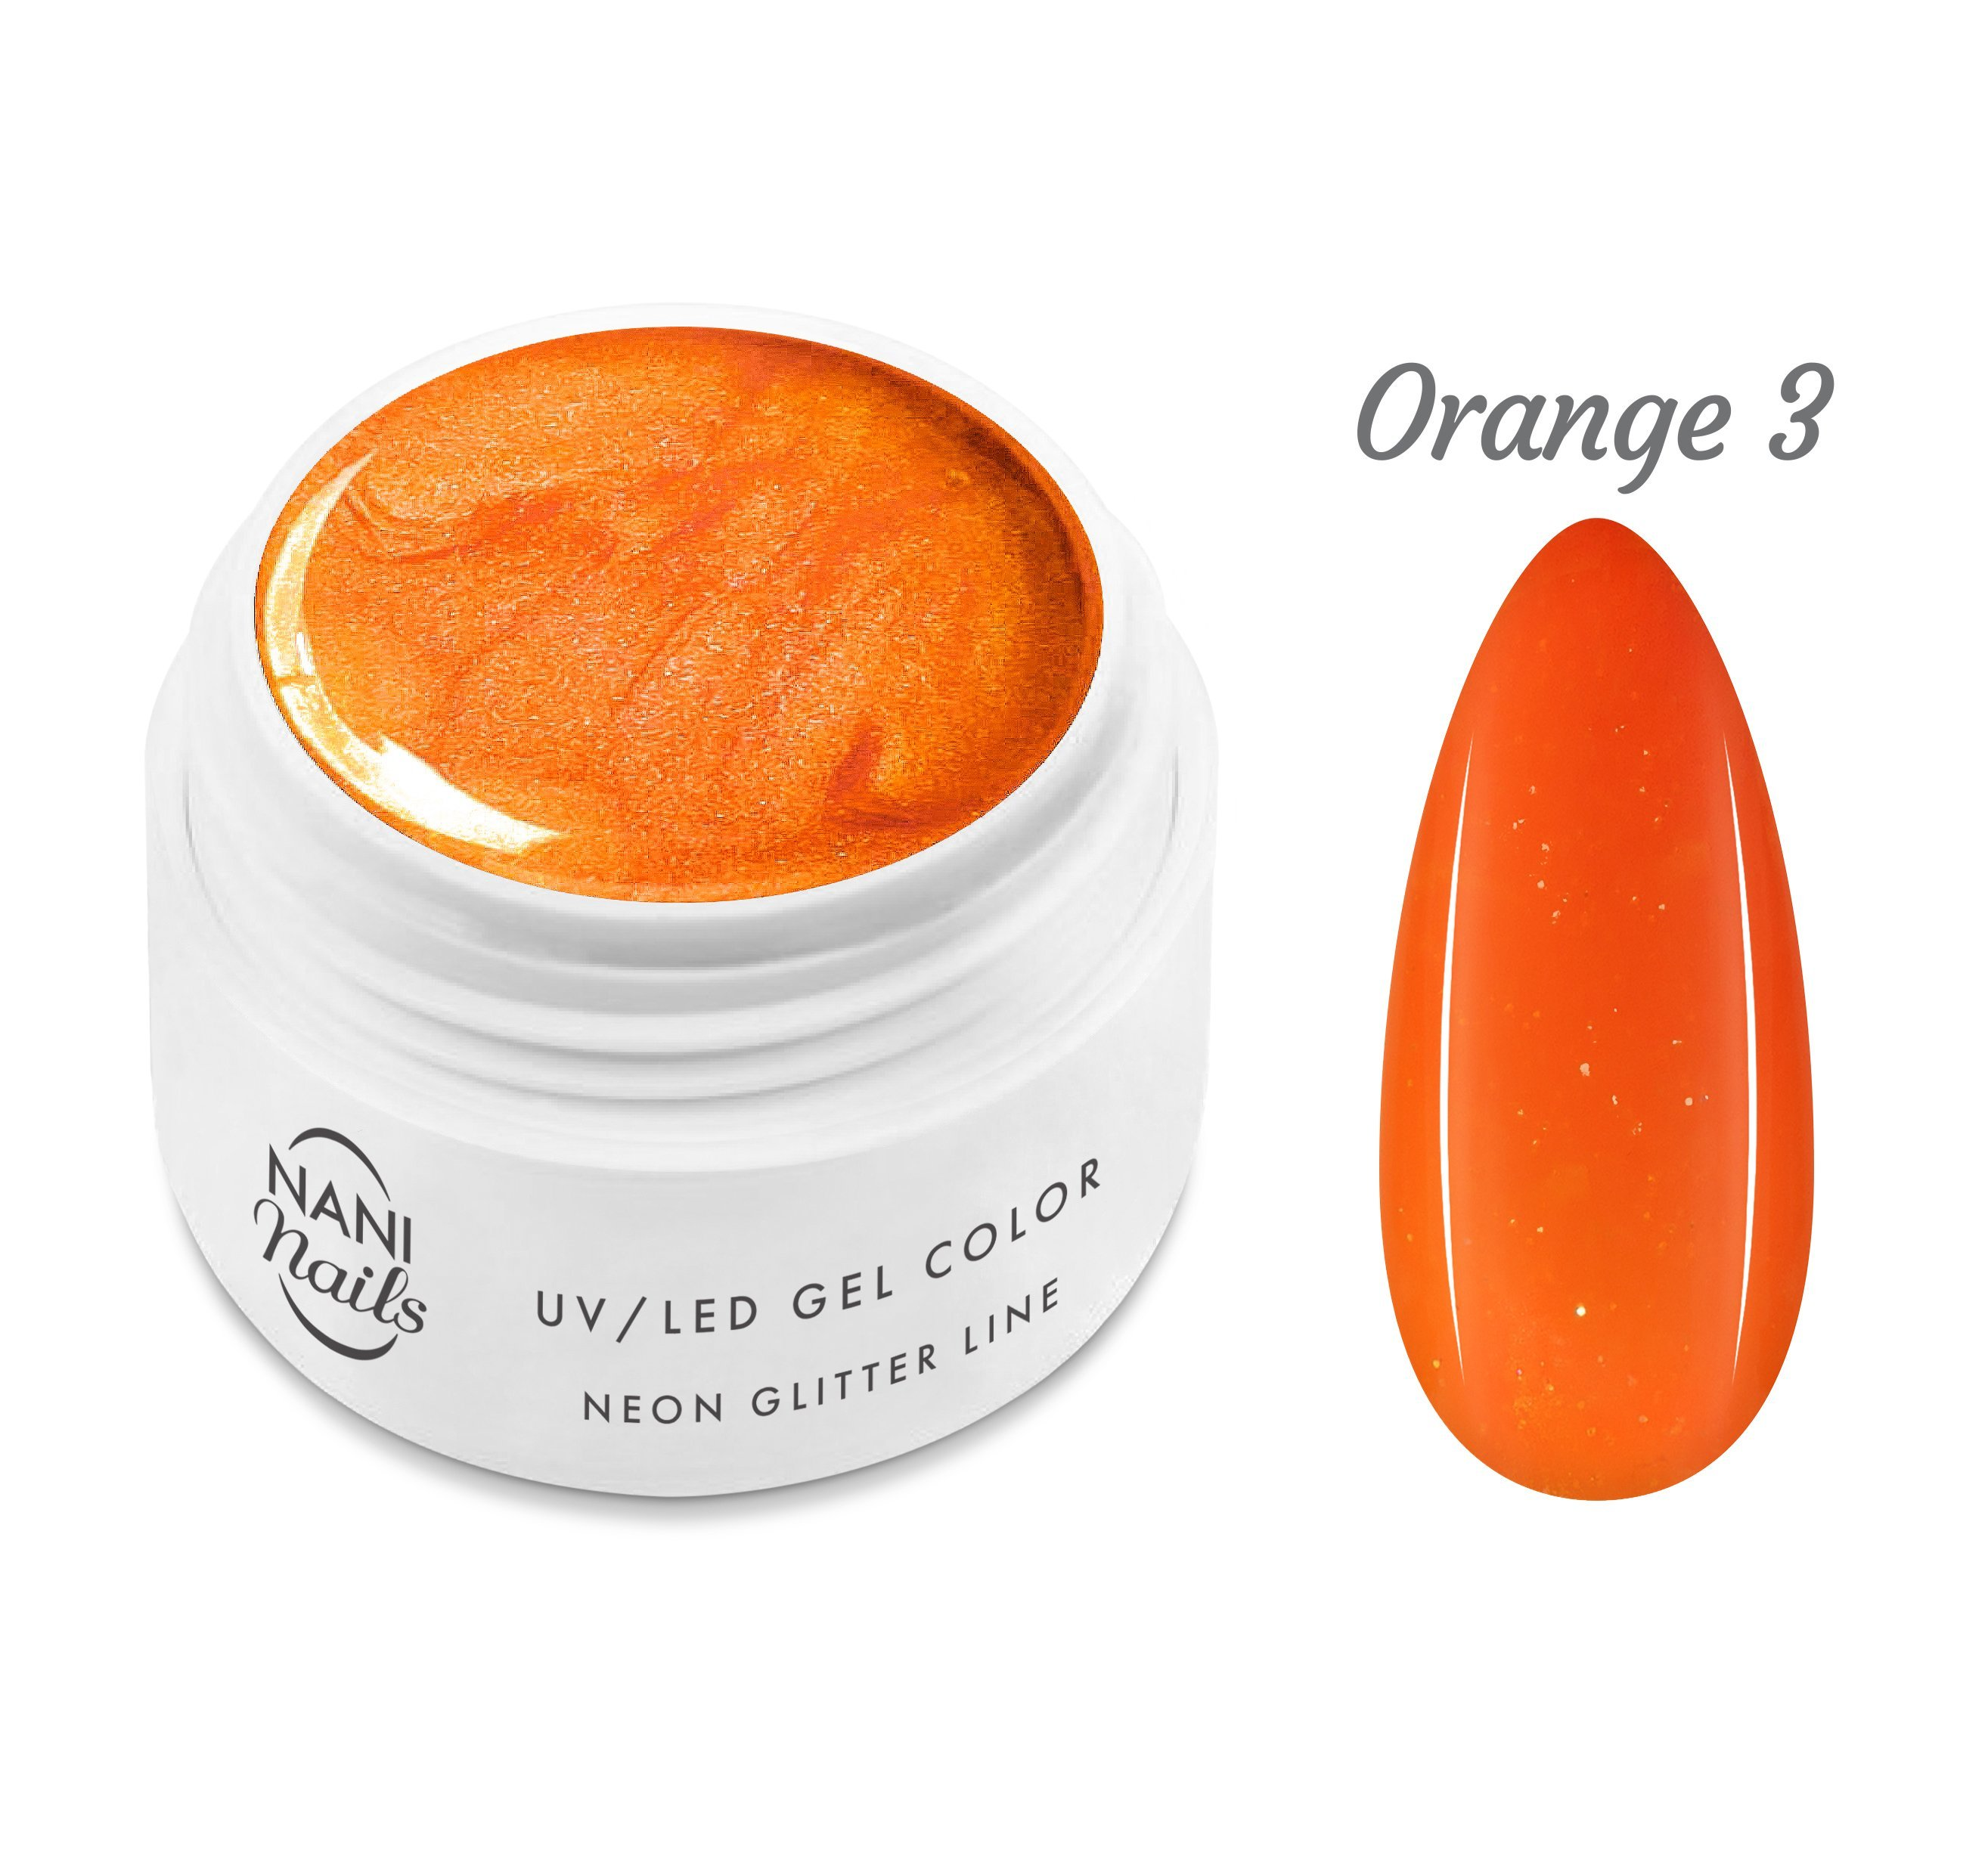 NANI UV gél Neon Glitter Line 5 ml - Orange